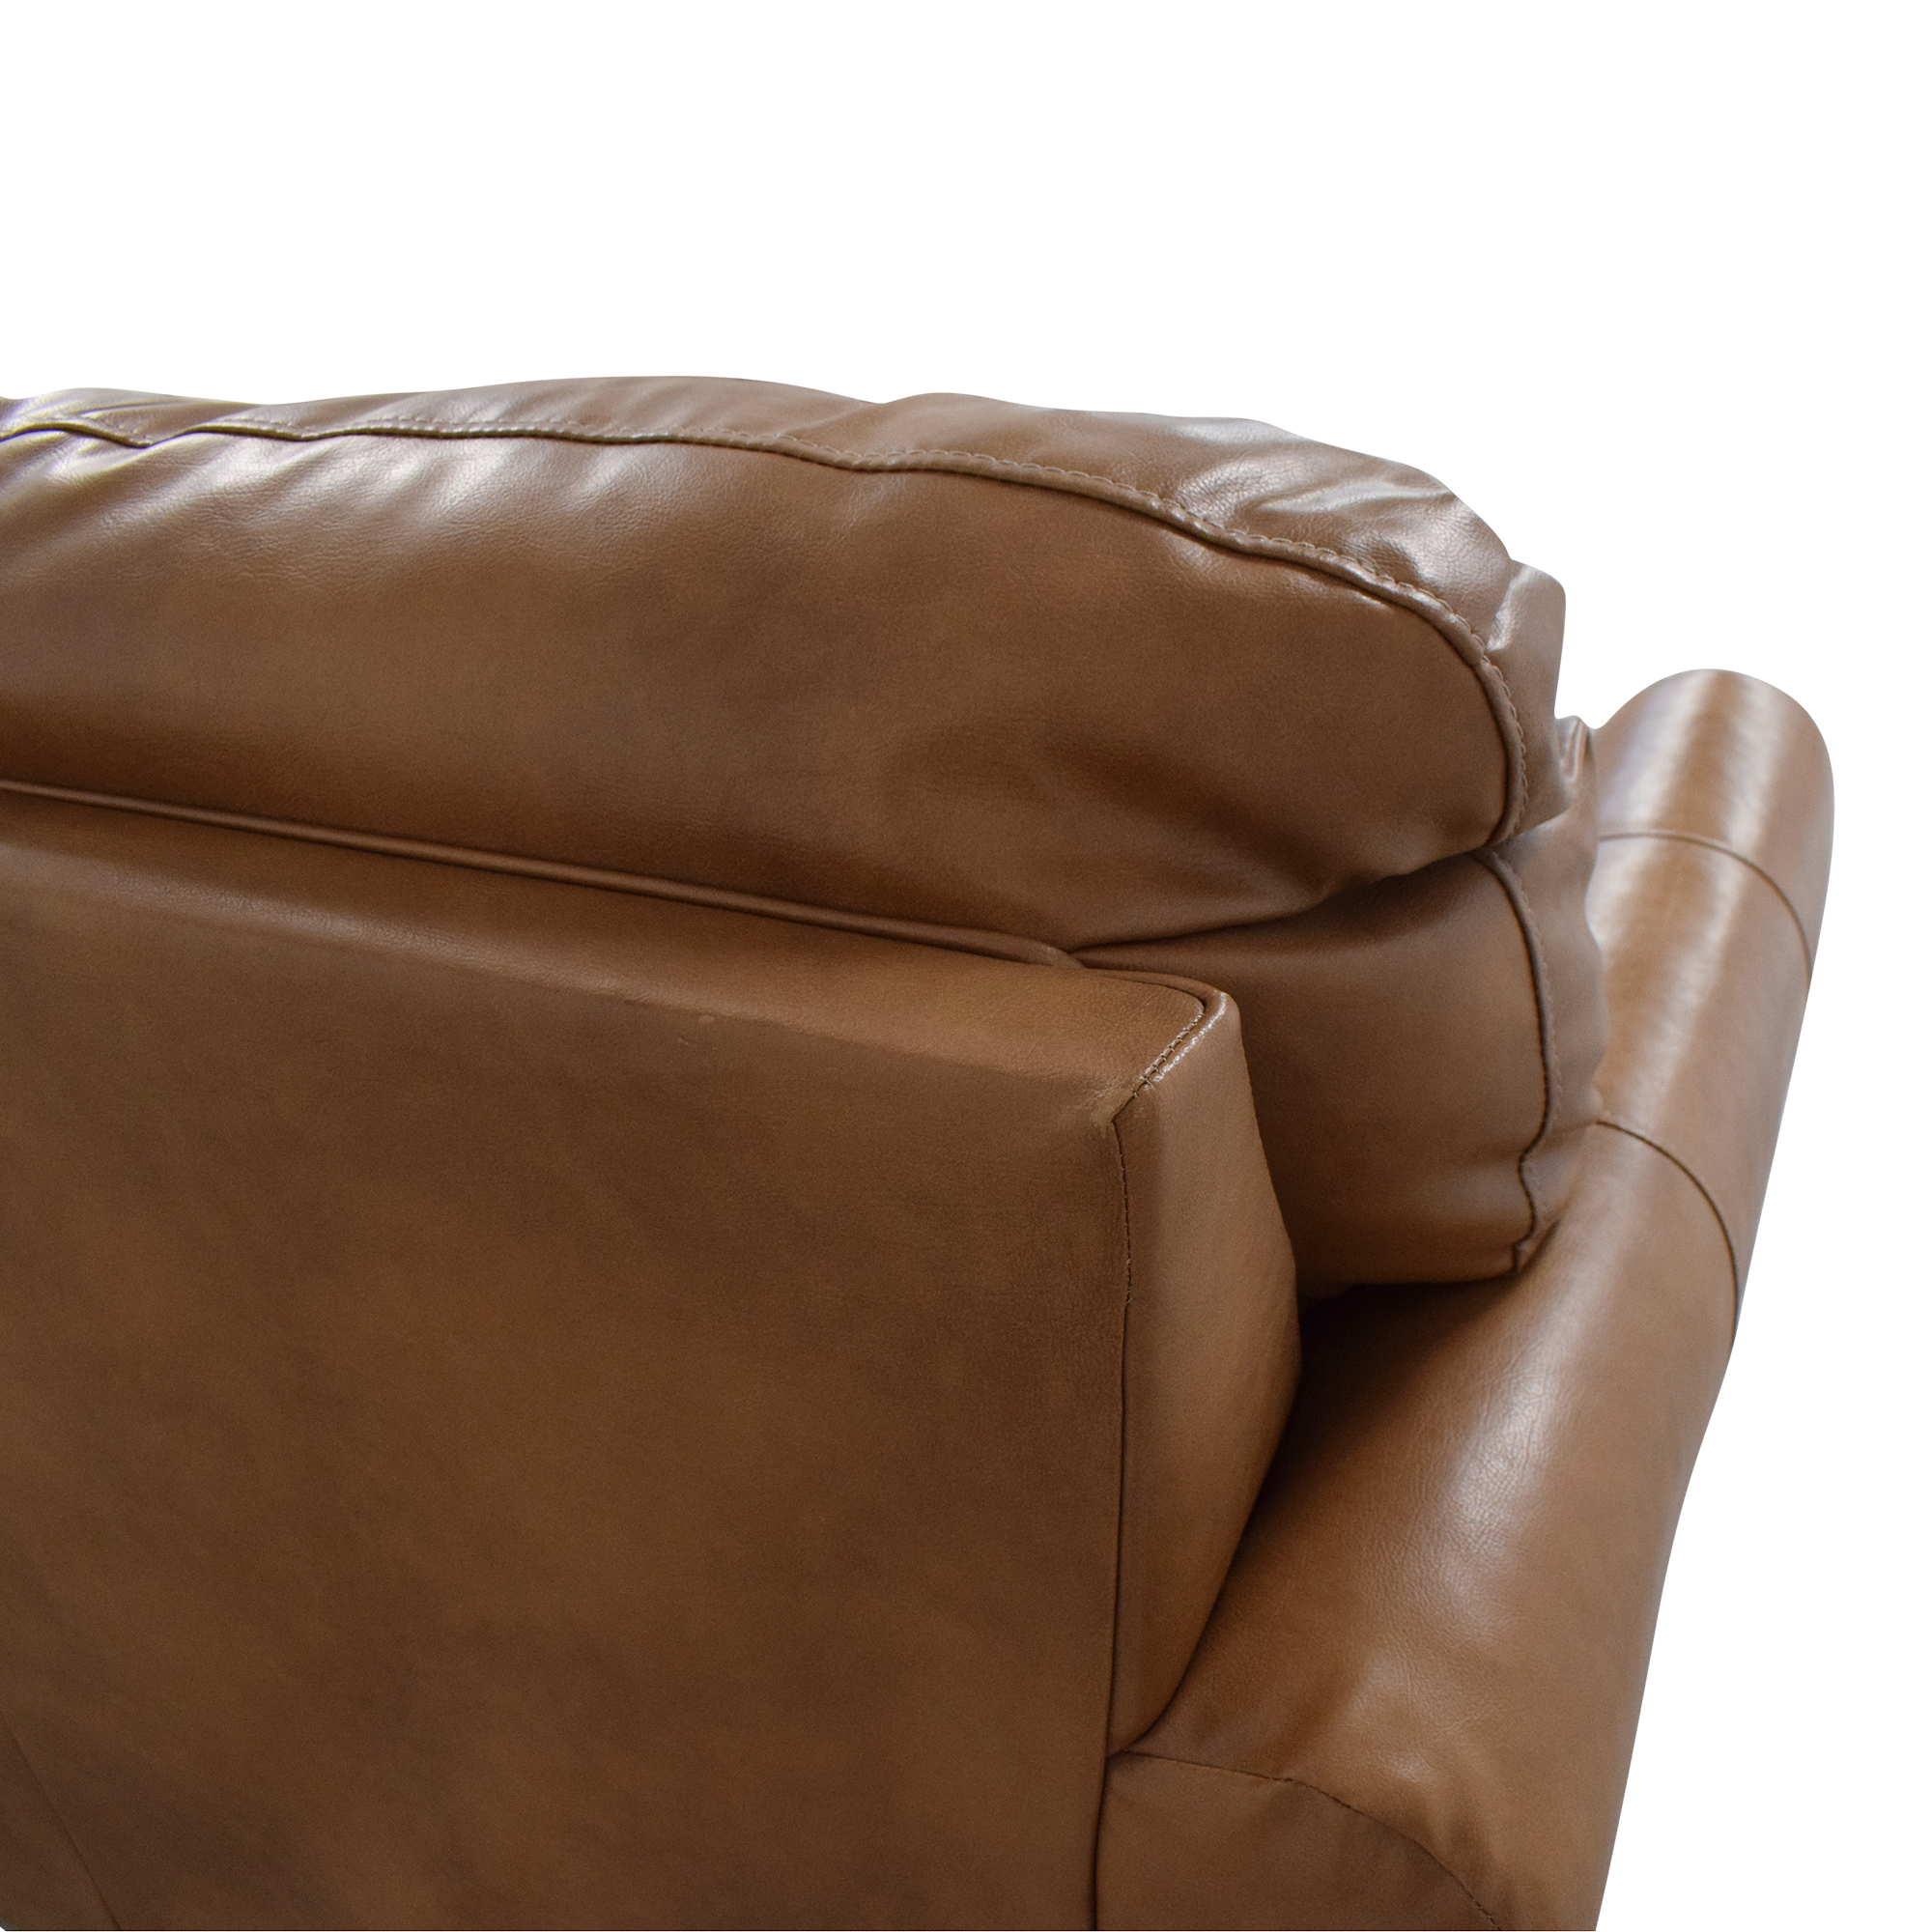 Overstock Overstock Caramel Leather Twin Pull Out Sofa Sofa Beds